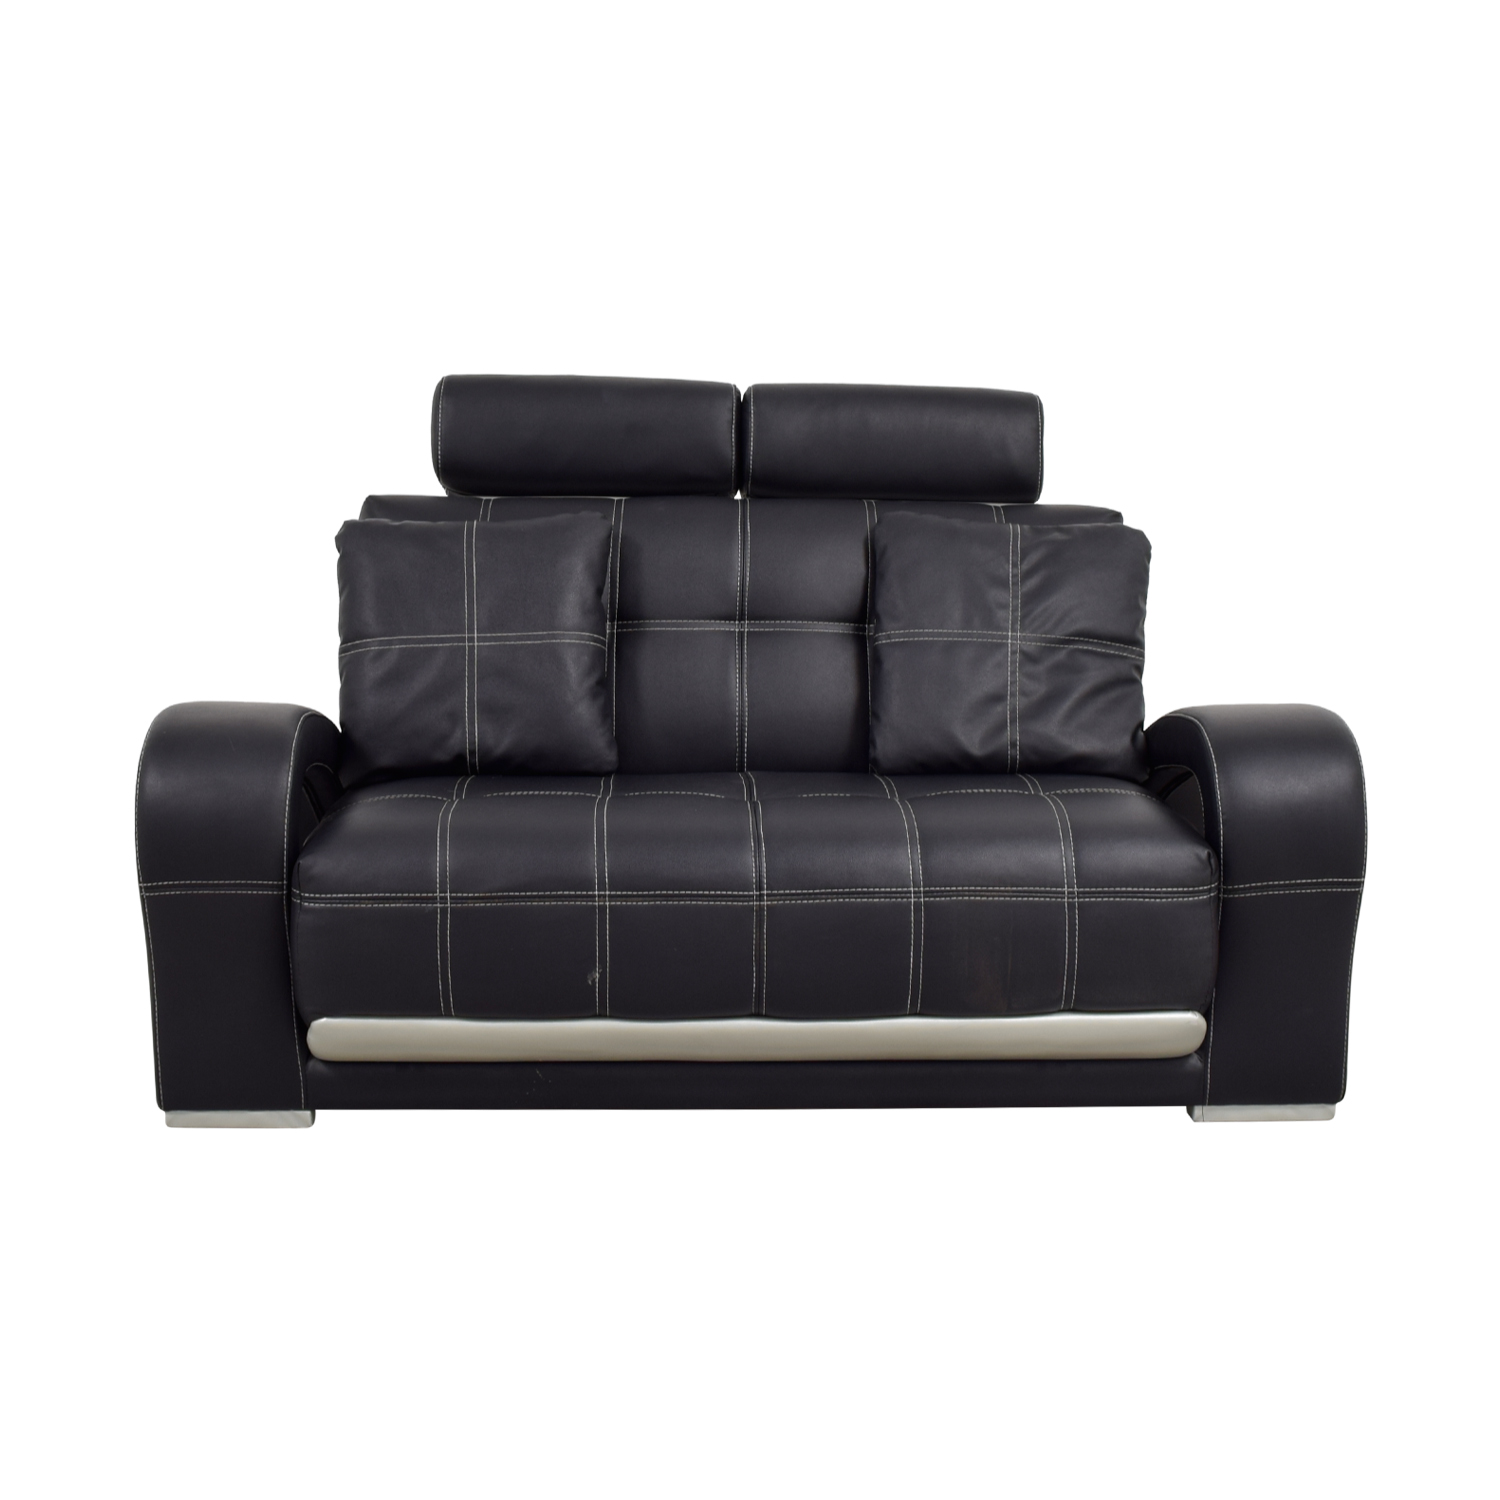 Black Leather Love Seat with Pillows sale